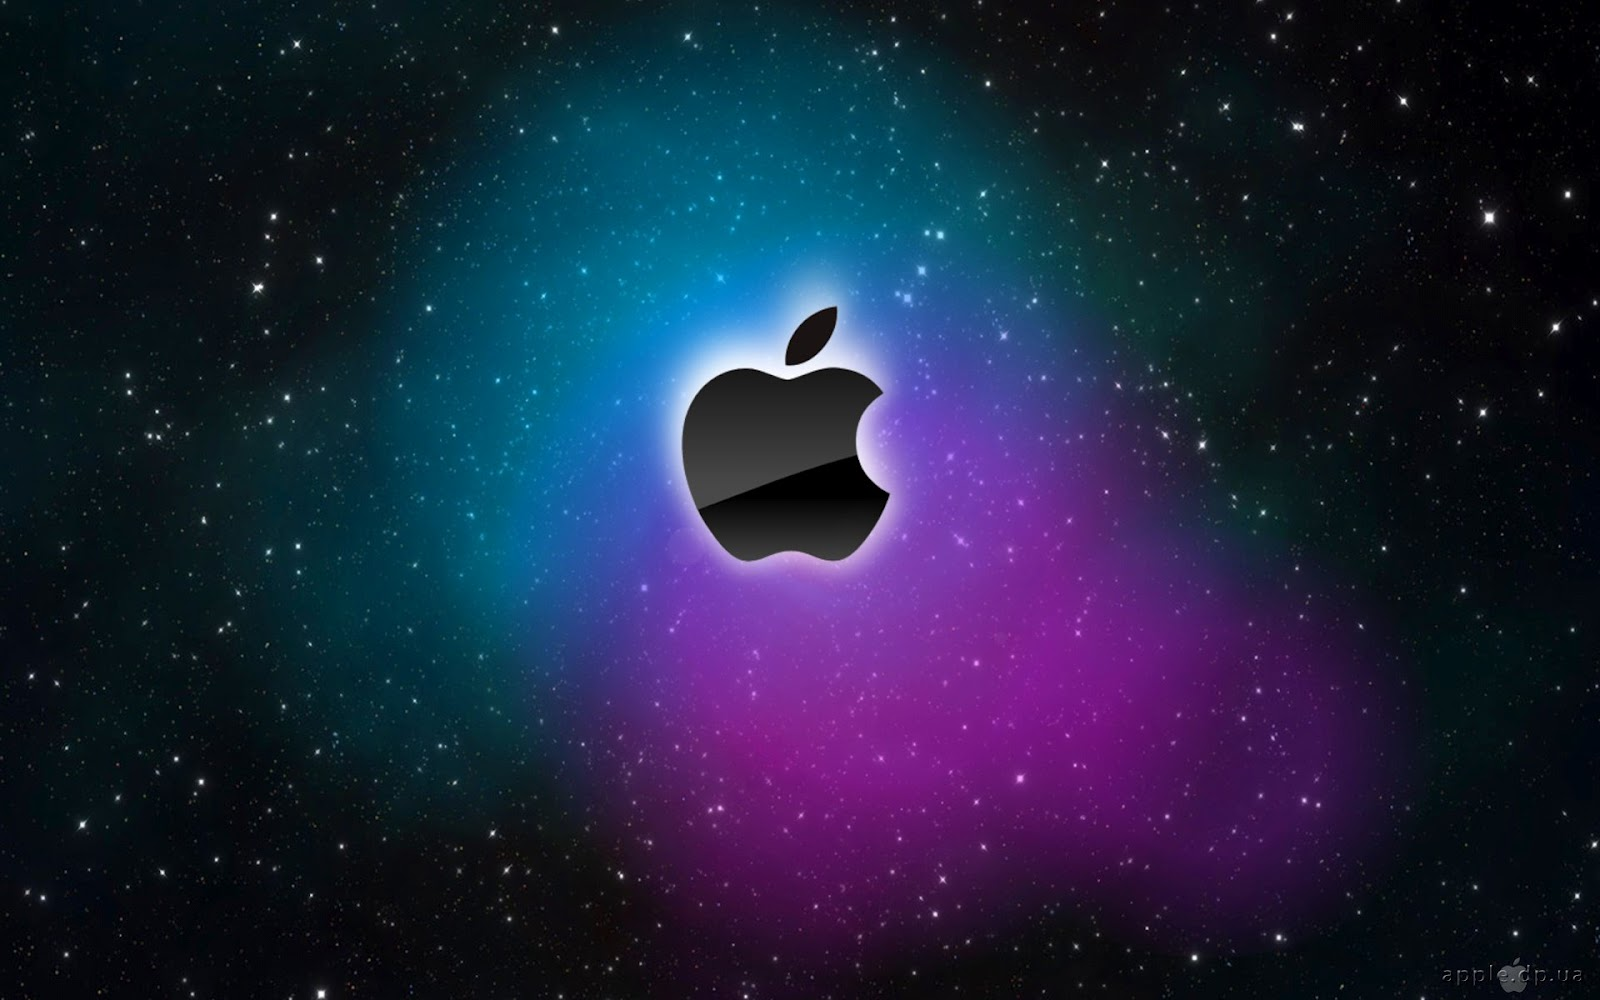 Apple Mac Abstract 3D Wallpapers HD | Awesome Wallpapers